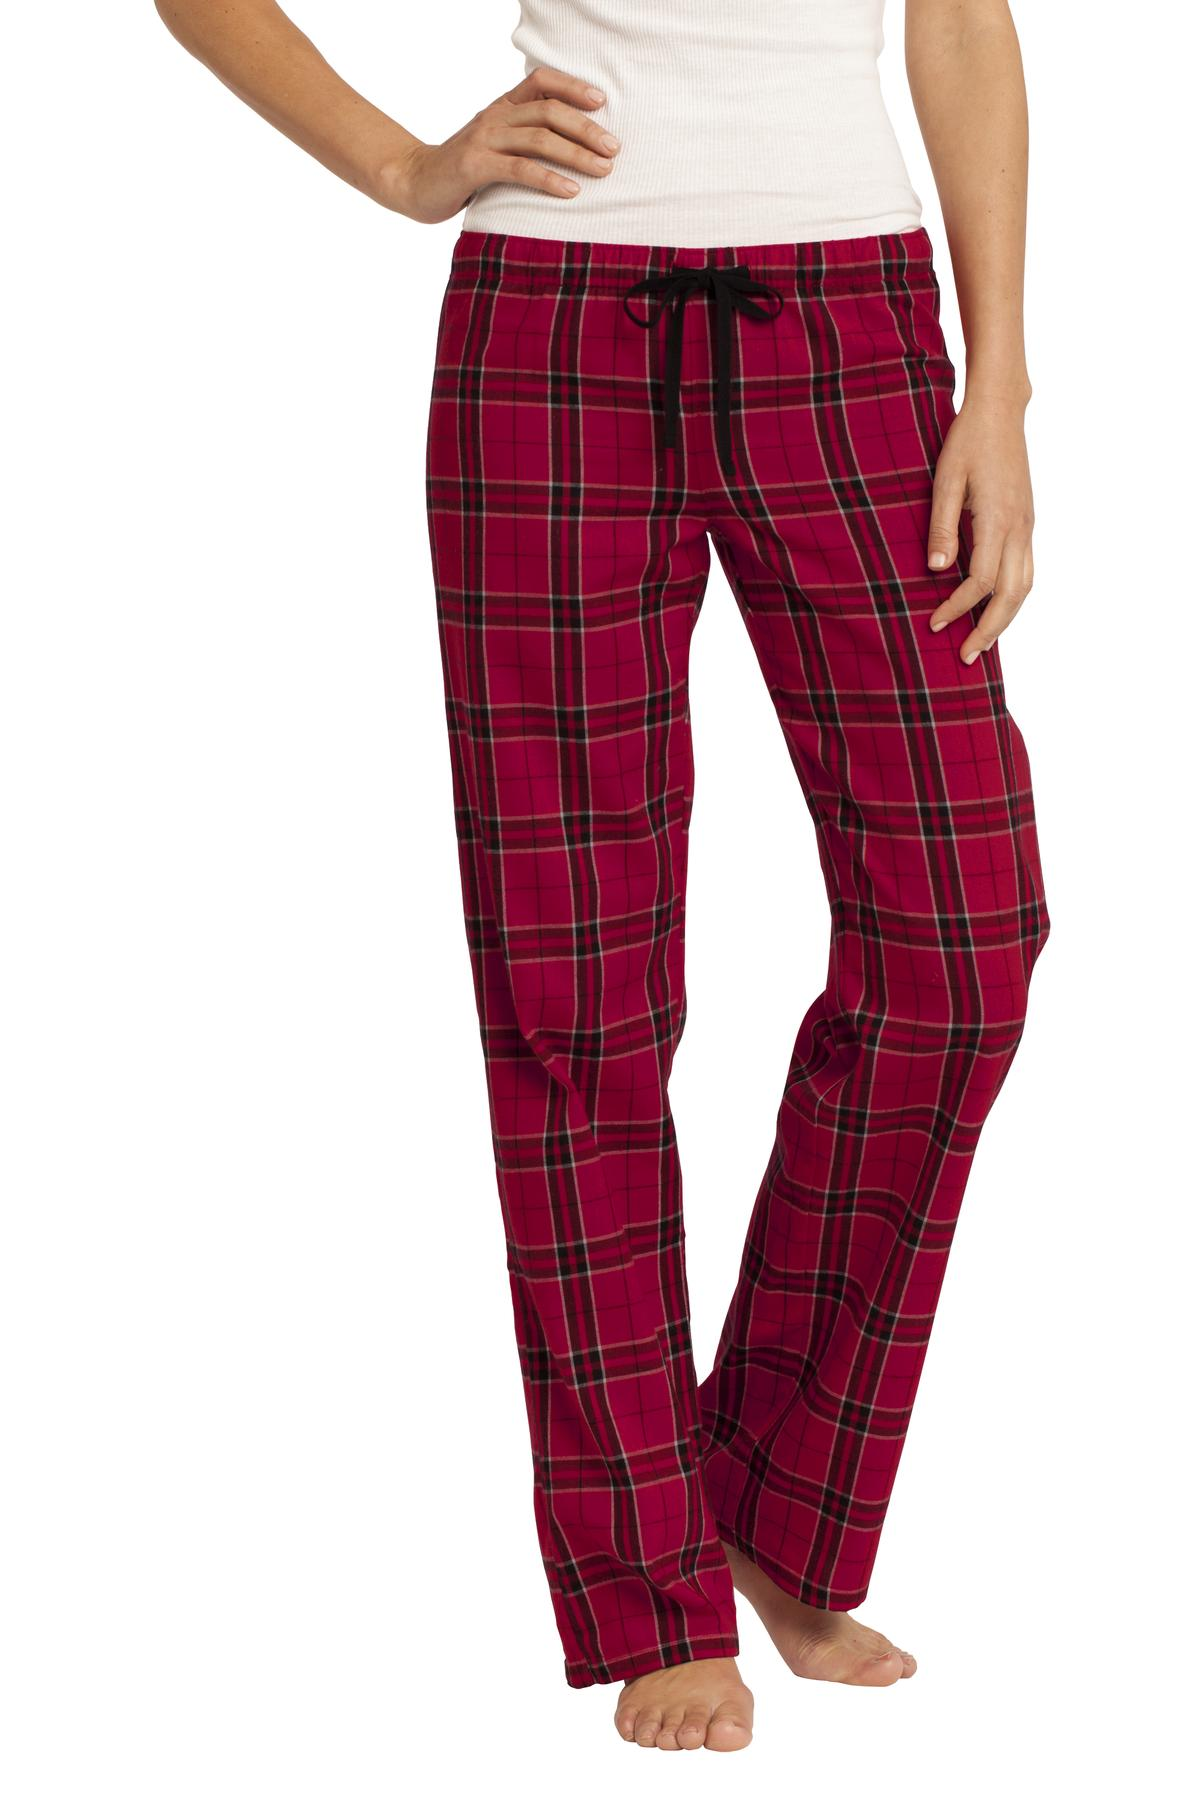 District ®  Women's Flannel Plaid Pant. DT2800 - New Red